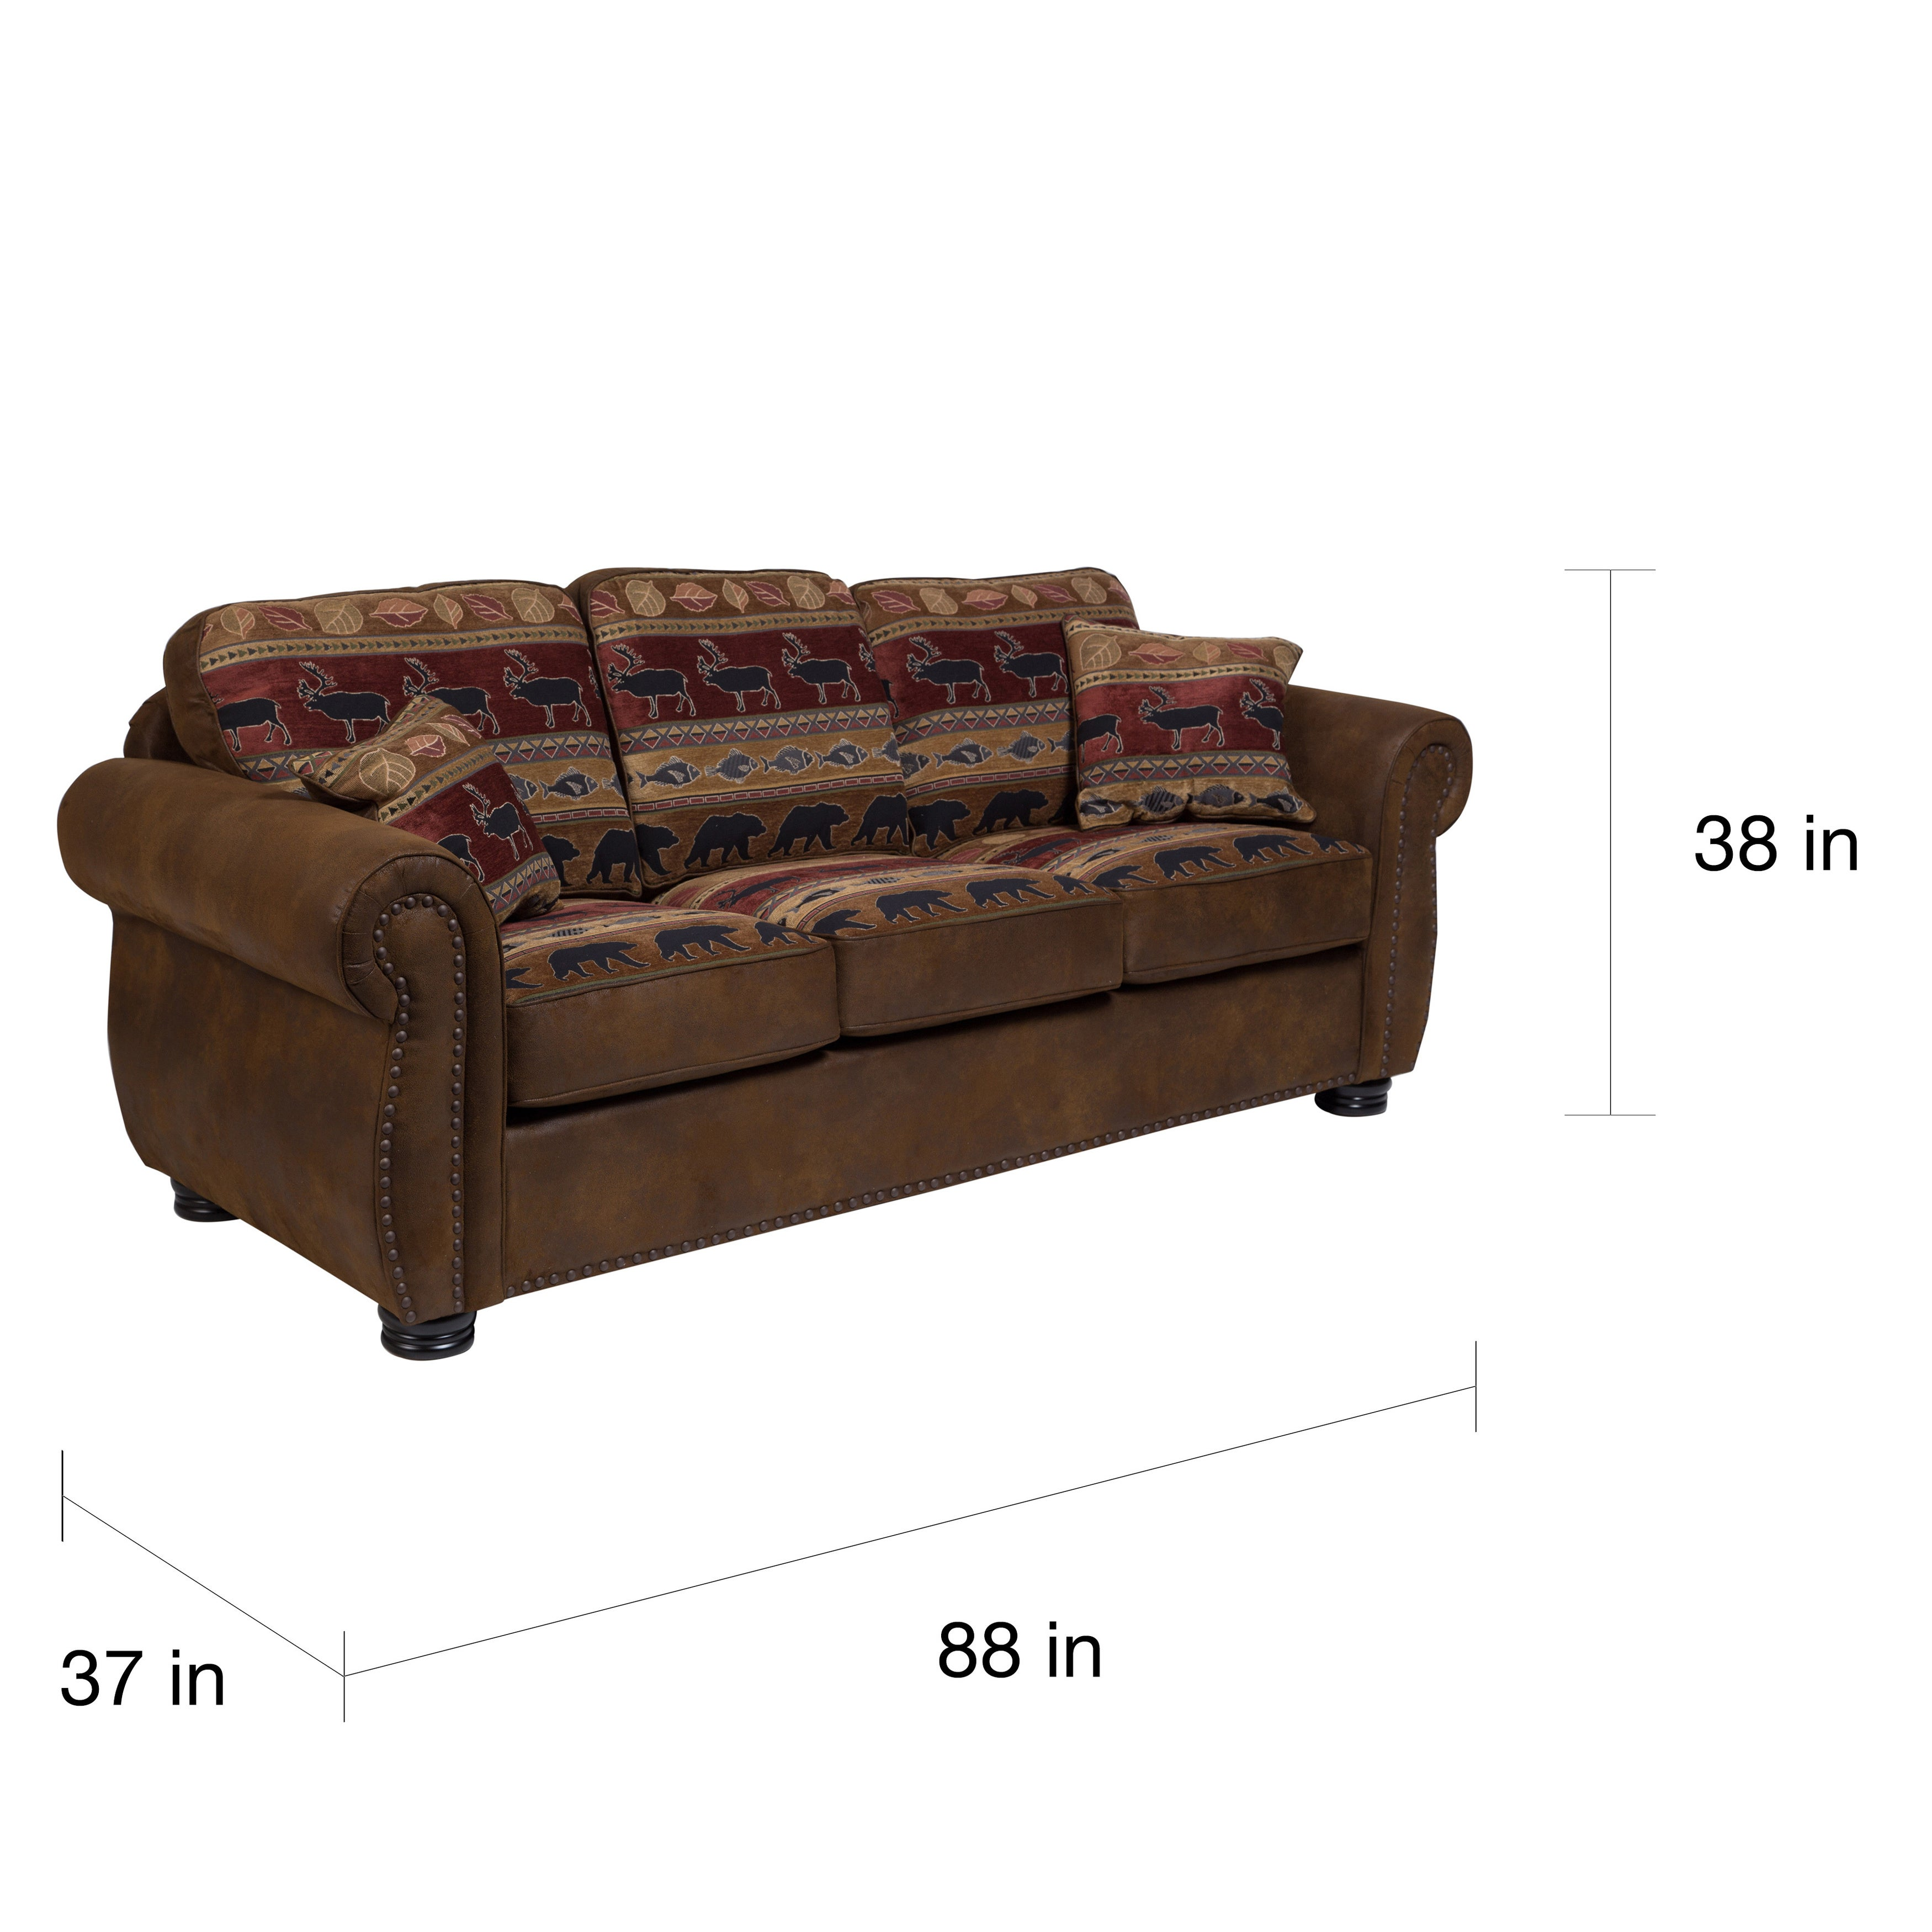 Porter Hunter Lodge Style Brown Sleeper Sofa With Deer Bear And Fish Fabric 38 H X 37 D 88 W